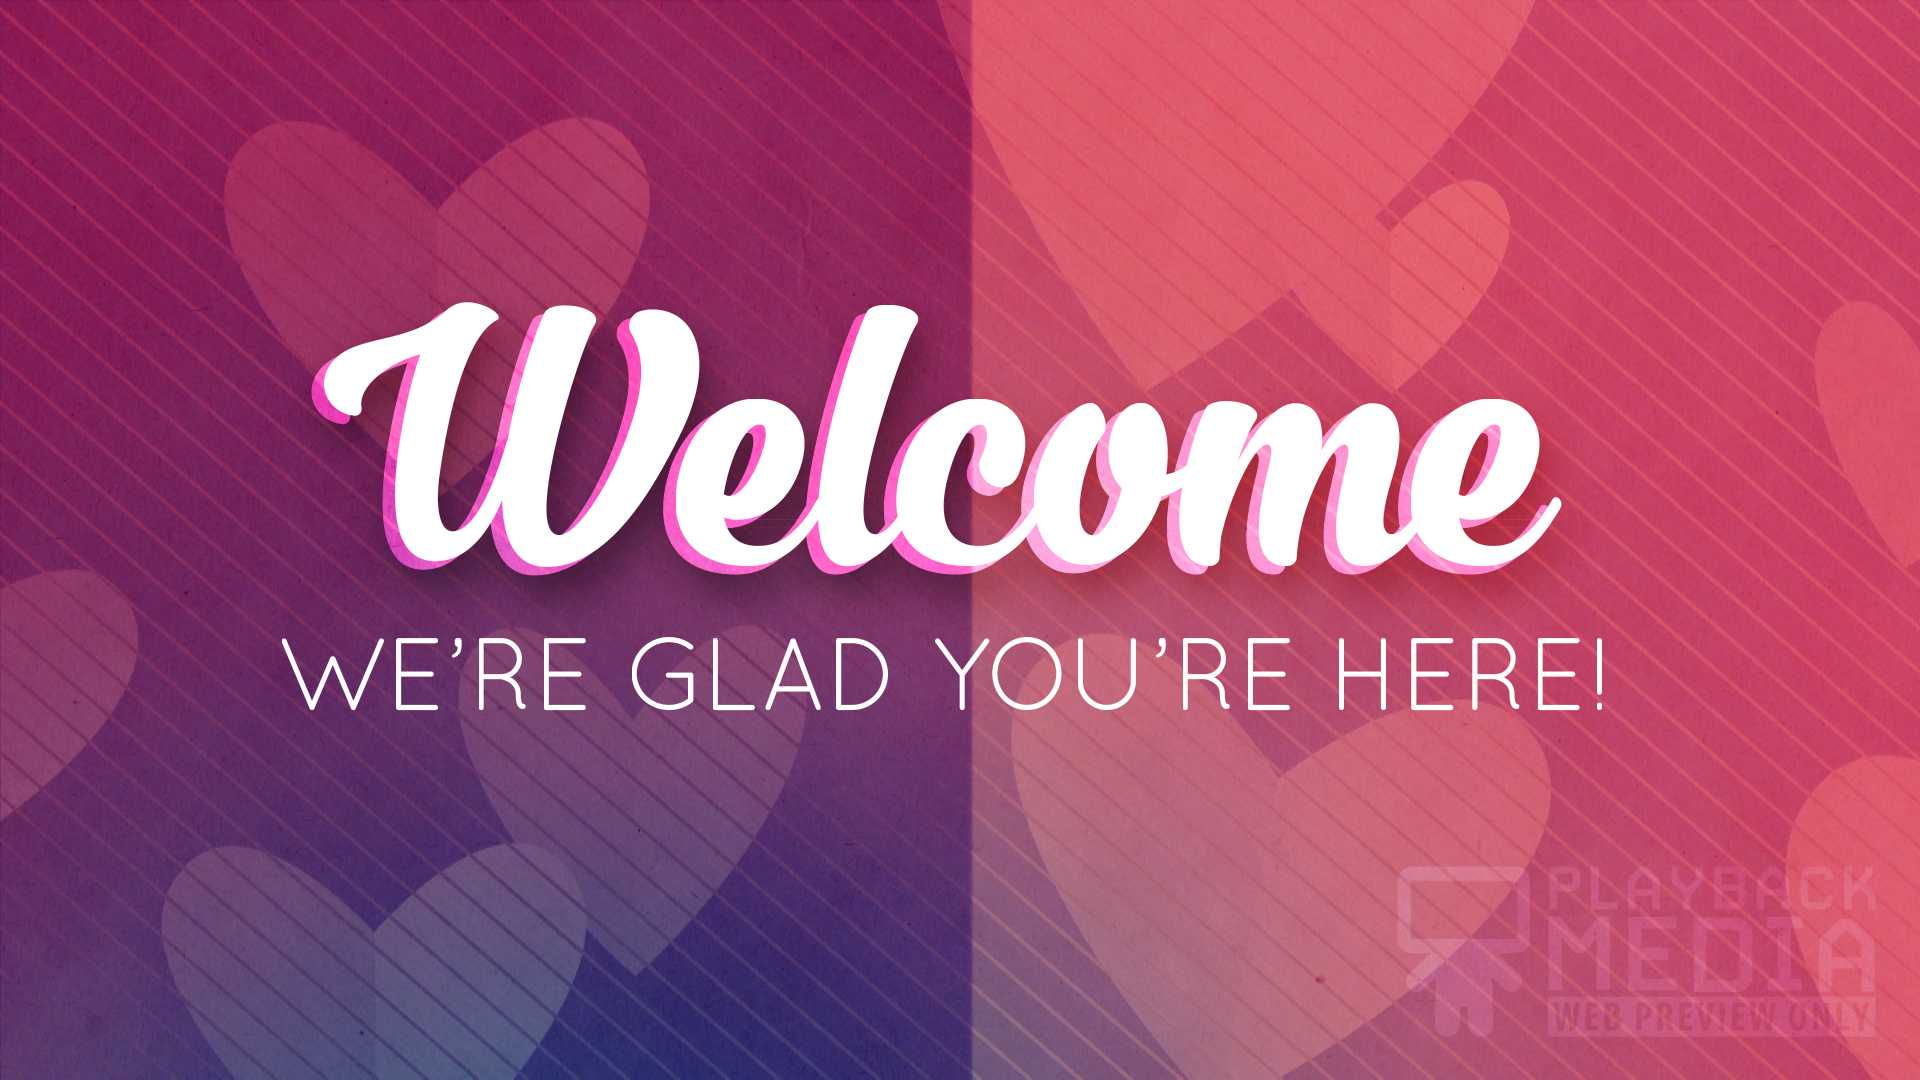 Heartfelt Love Welcome Motion Image